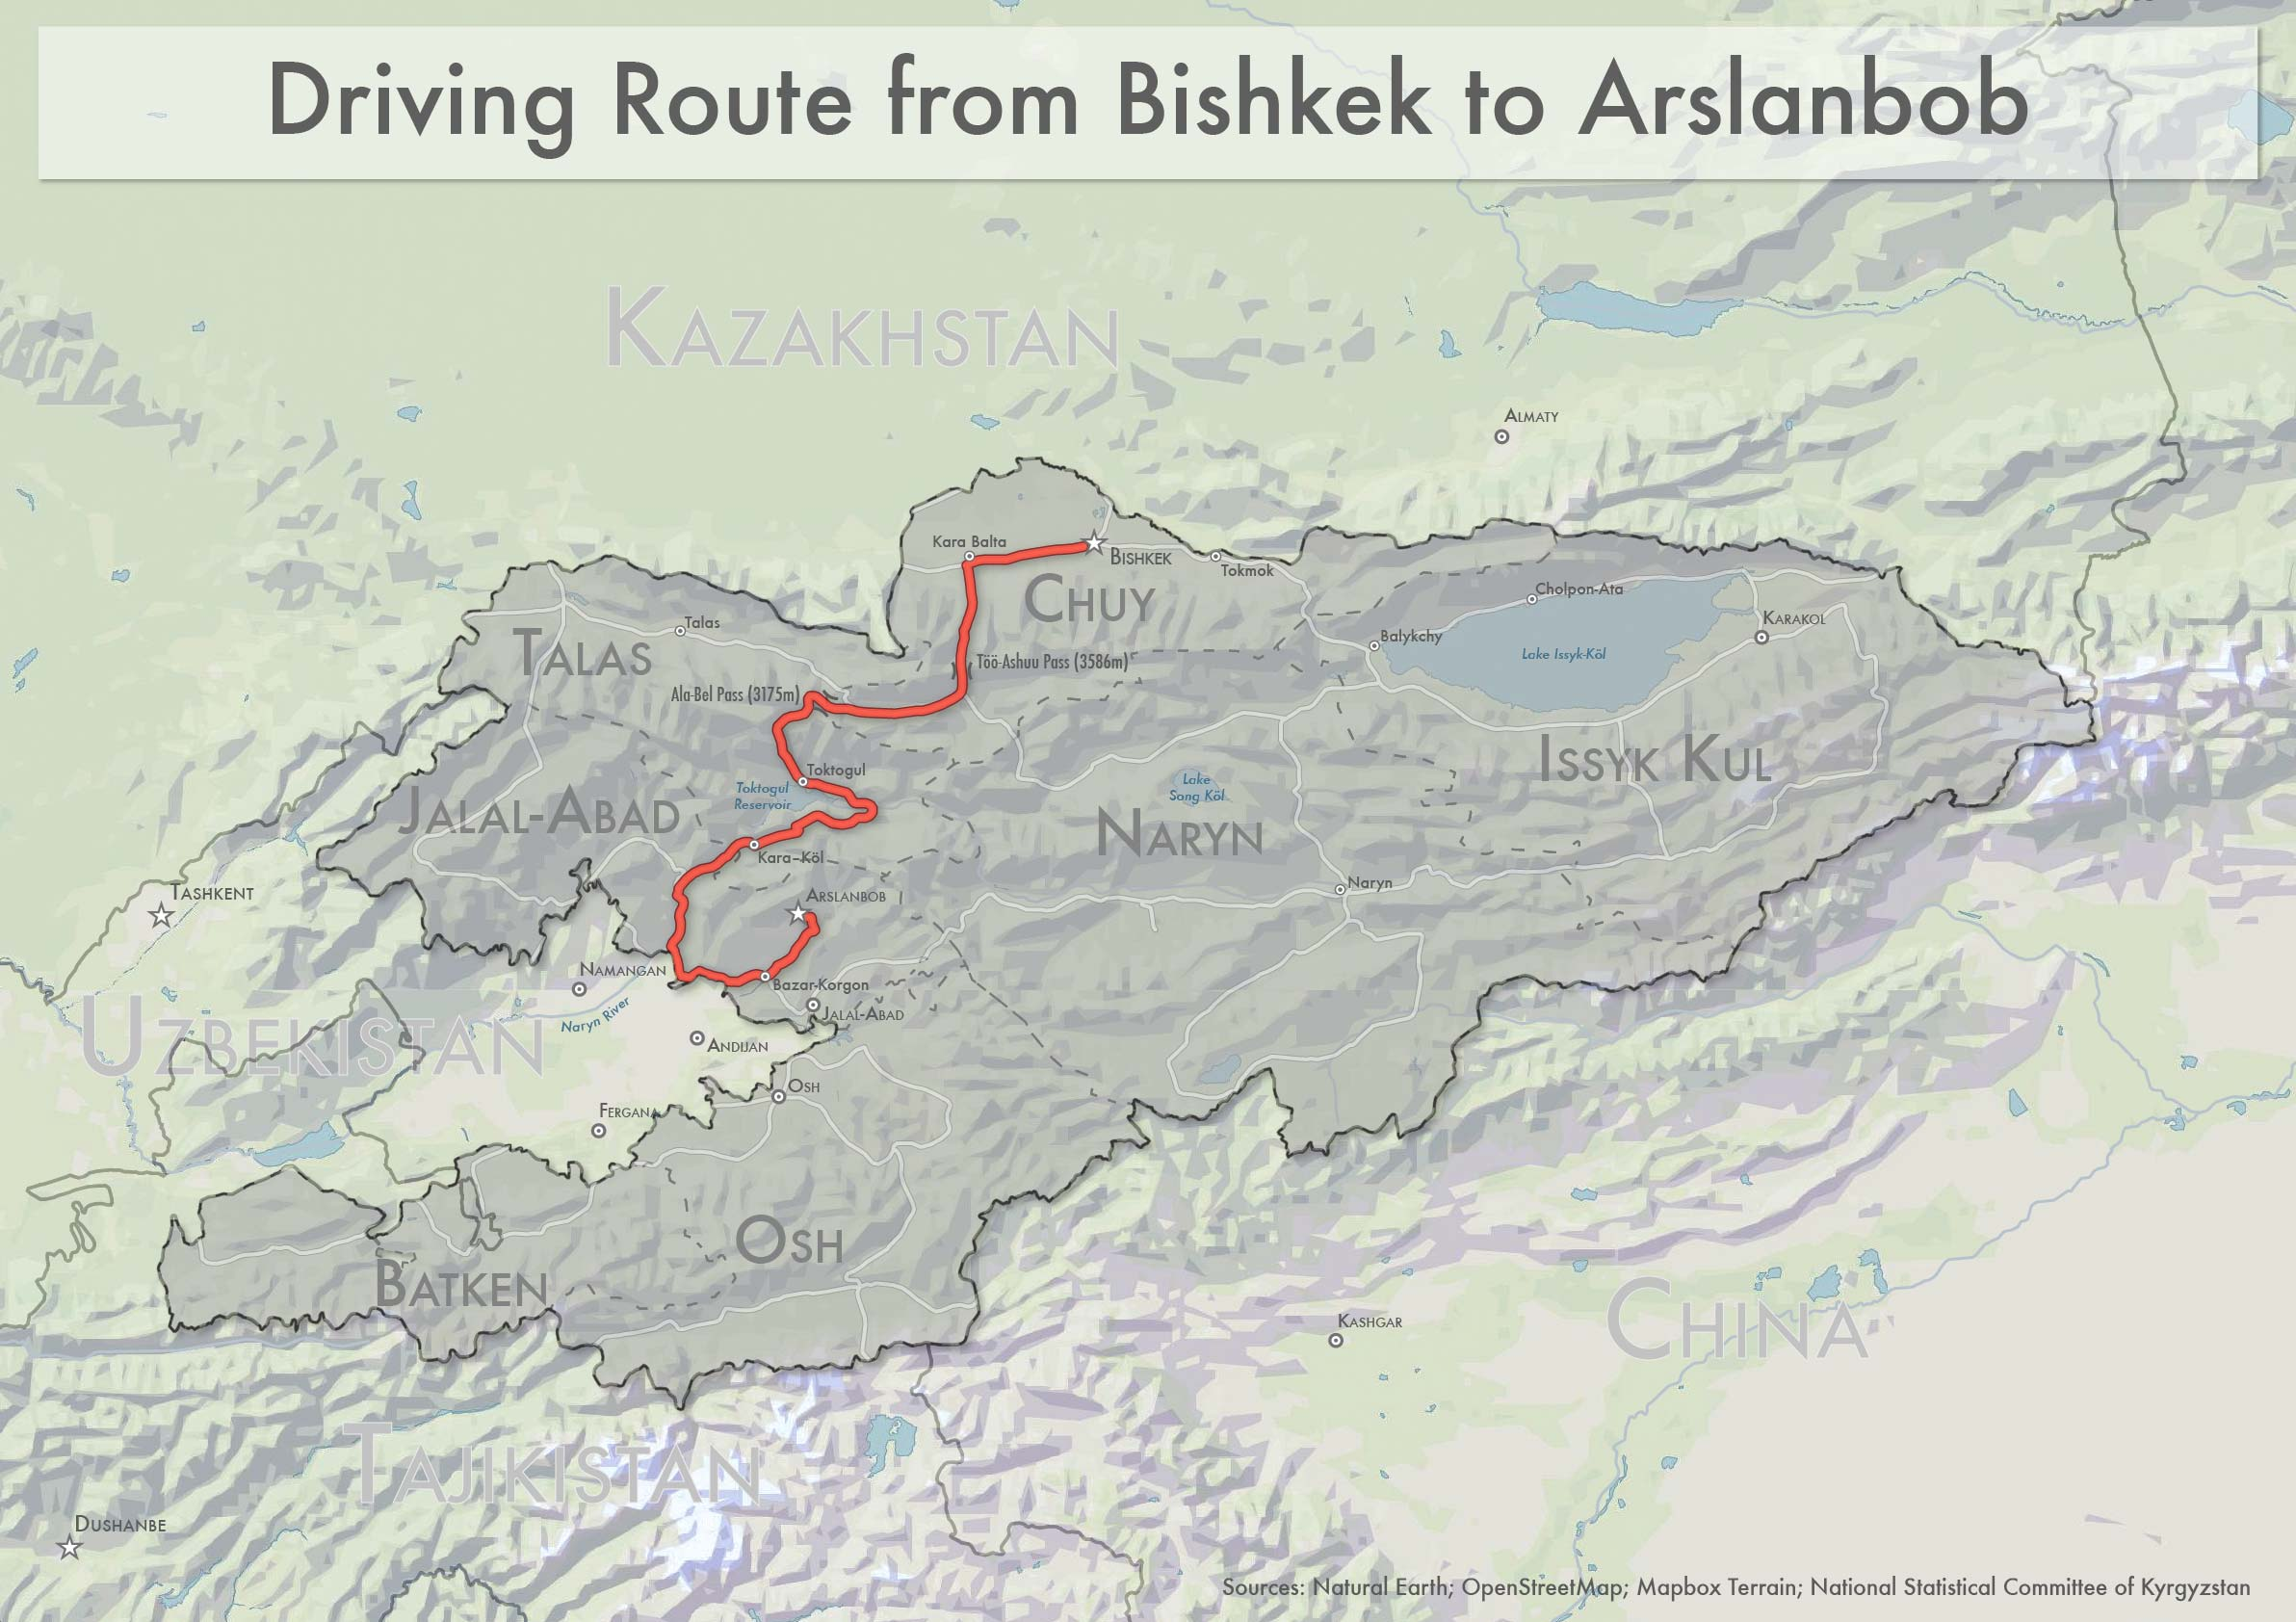 A map of Kyrgyzstan showing the 600-kilometer route from Bishkek to Arslanbob. Click to view a larger version of the map in a new tab.